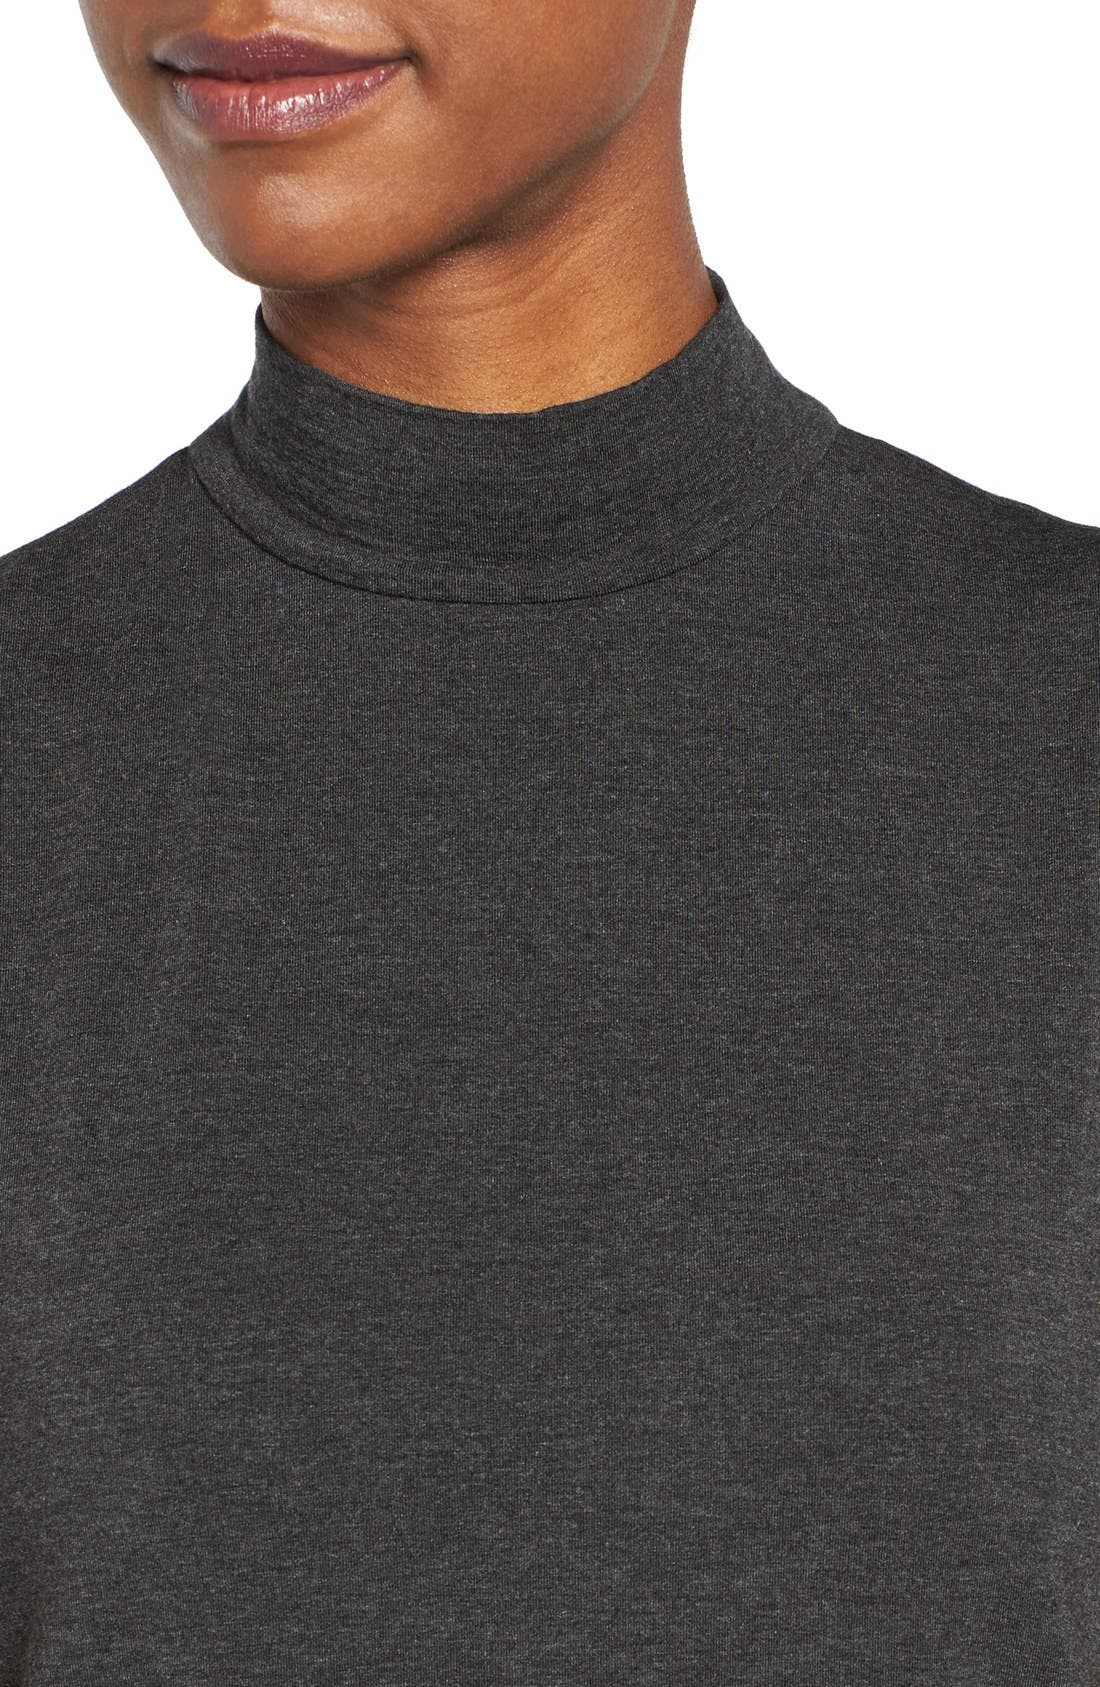 EILEEN FISHER,                             Lightweight Tencel<sup>®</sup> Lyocell Stretch Jersey Top,                             Alternate thumbnail 4, color,                             001